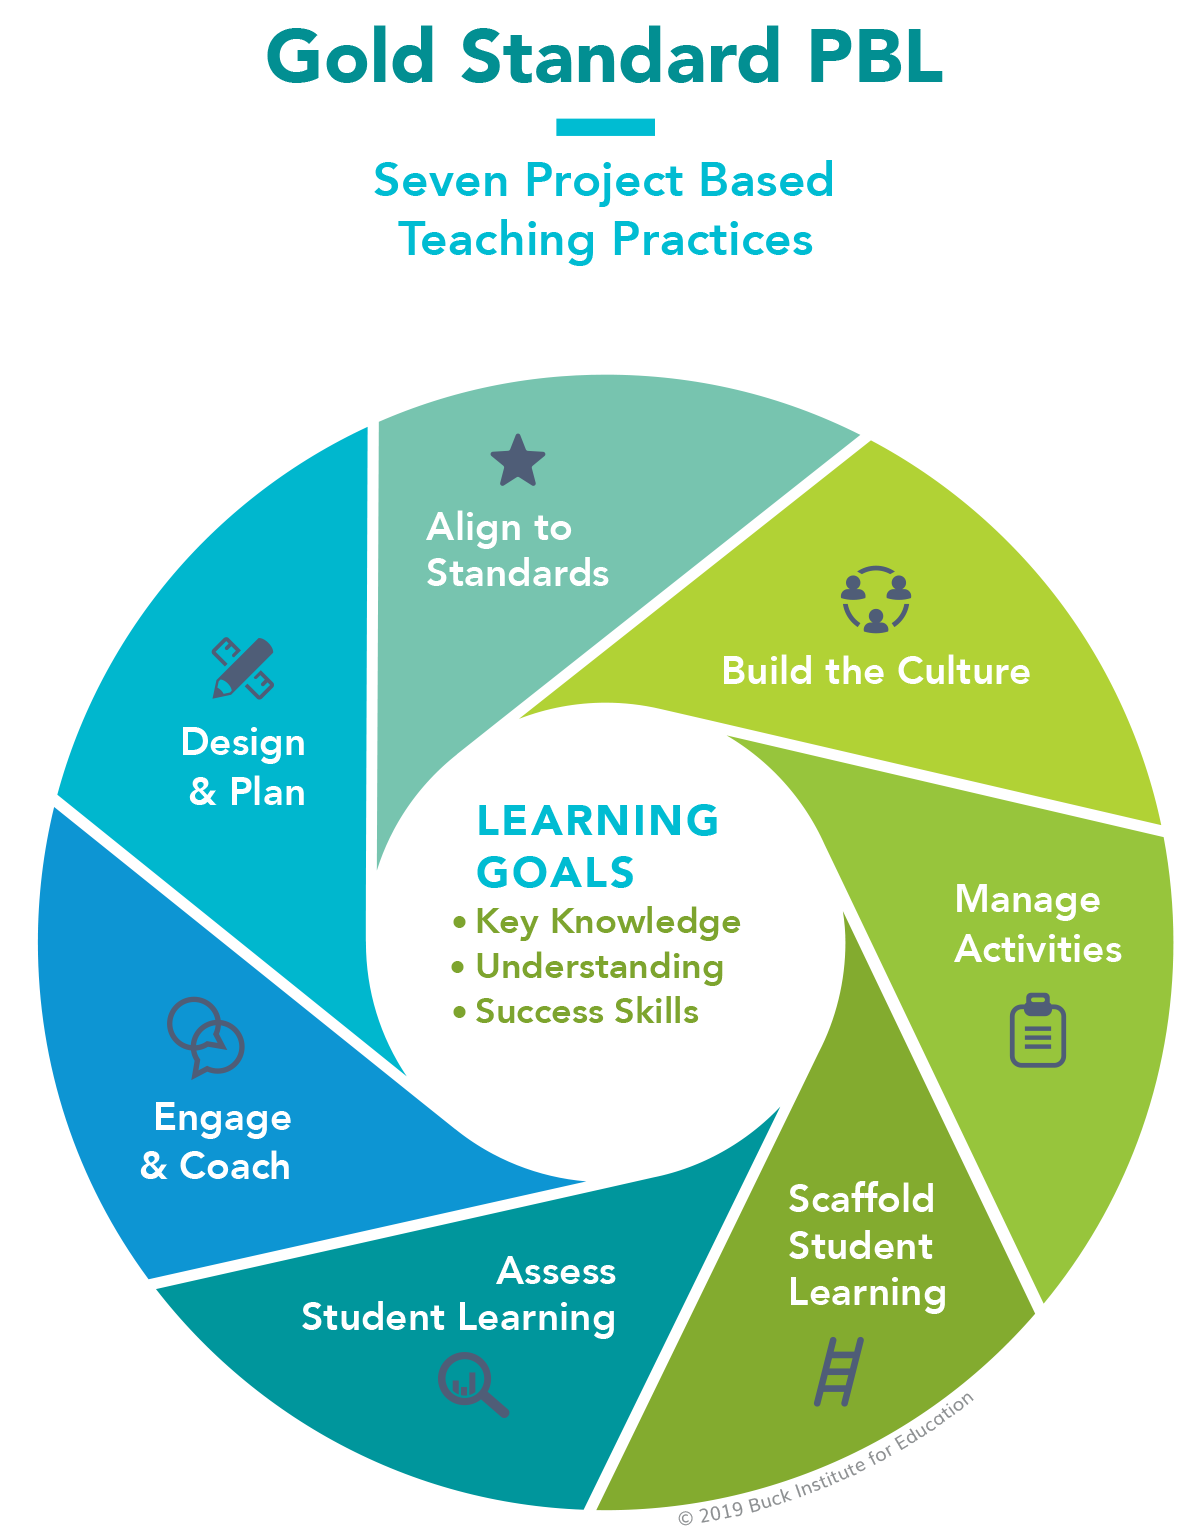 PBLWorks Gold Standard Teaching Practices